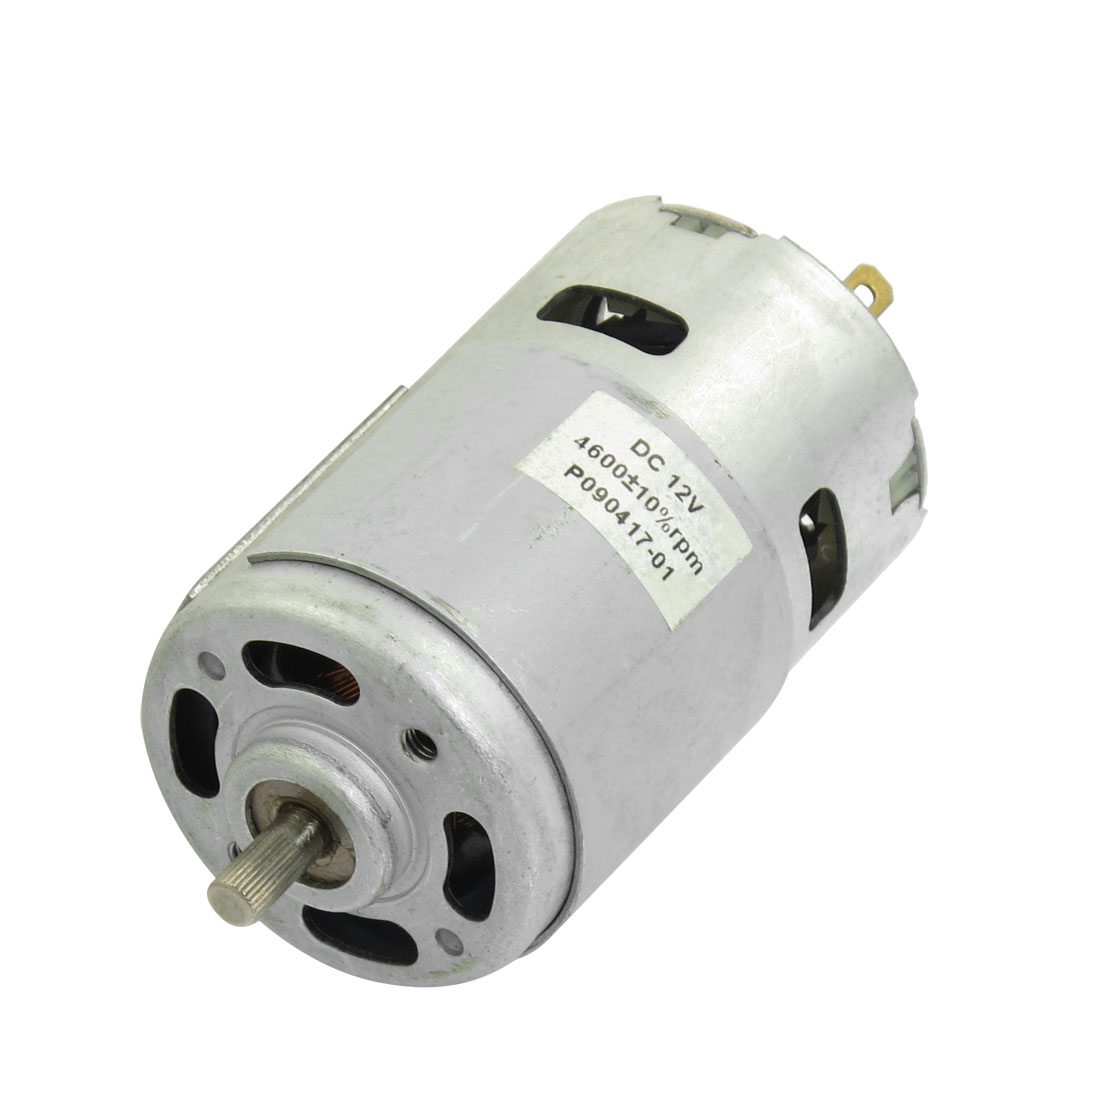 12VDC 4600RPM Rotated Speed Cylinder Shape Magnetic Motor 2 Terminals